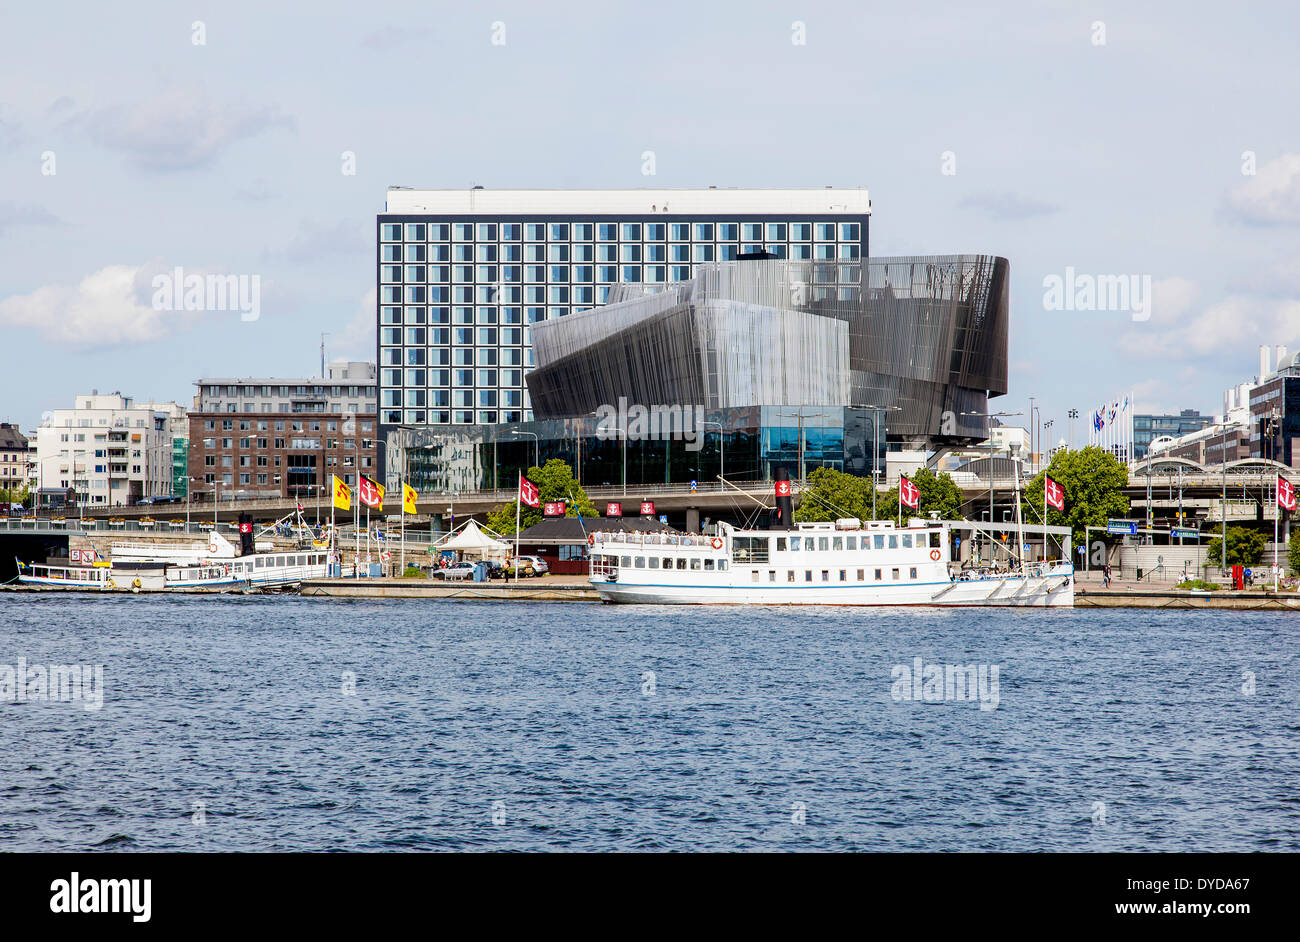 Radisson Blu Waterfront Hotel and Conference Centre, Stockholm, Stockholms län or Stockholm County, Sweden - Stock Image